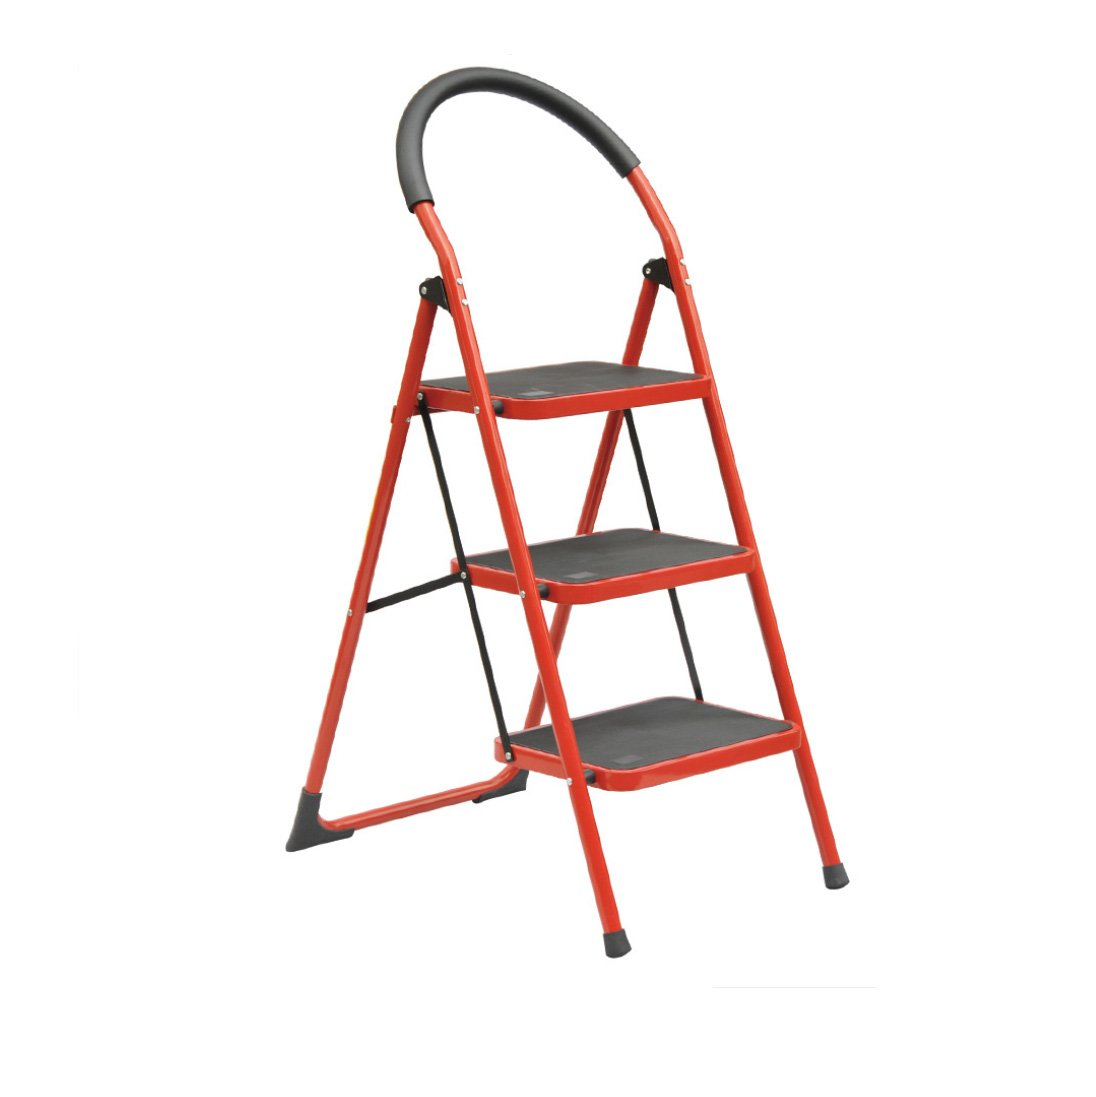 Centurich 3-Step Folding Stool Steel Step Stool Foldable Step Ladder with Rubber Handgrip and Non-slip Treads (Red) by Centurich